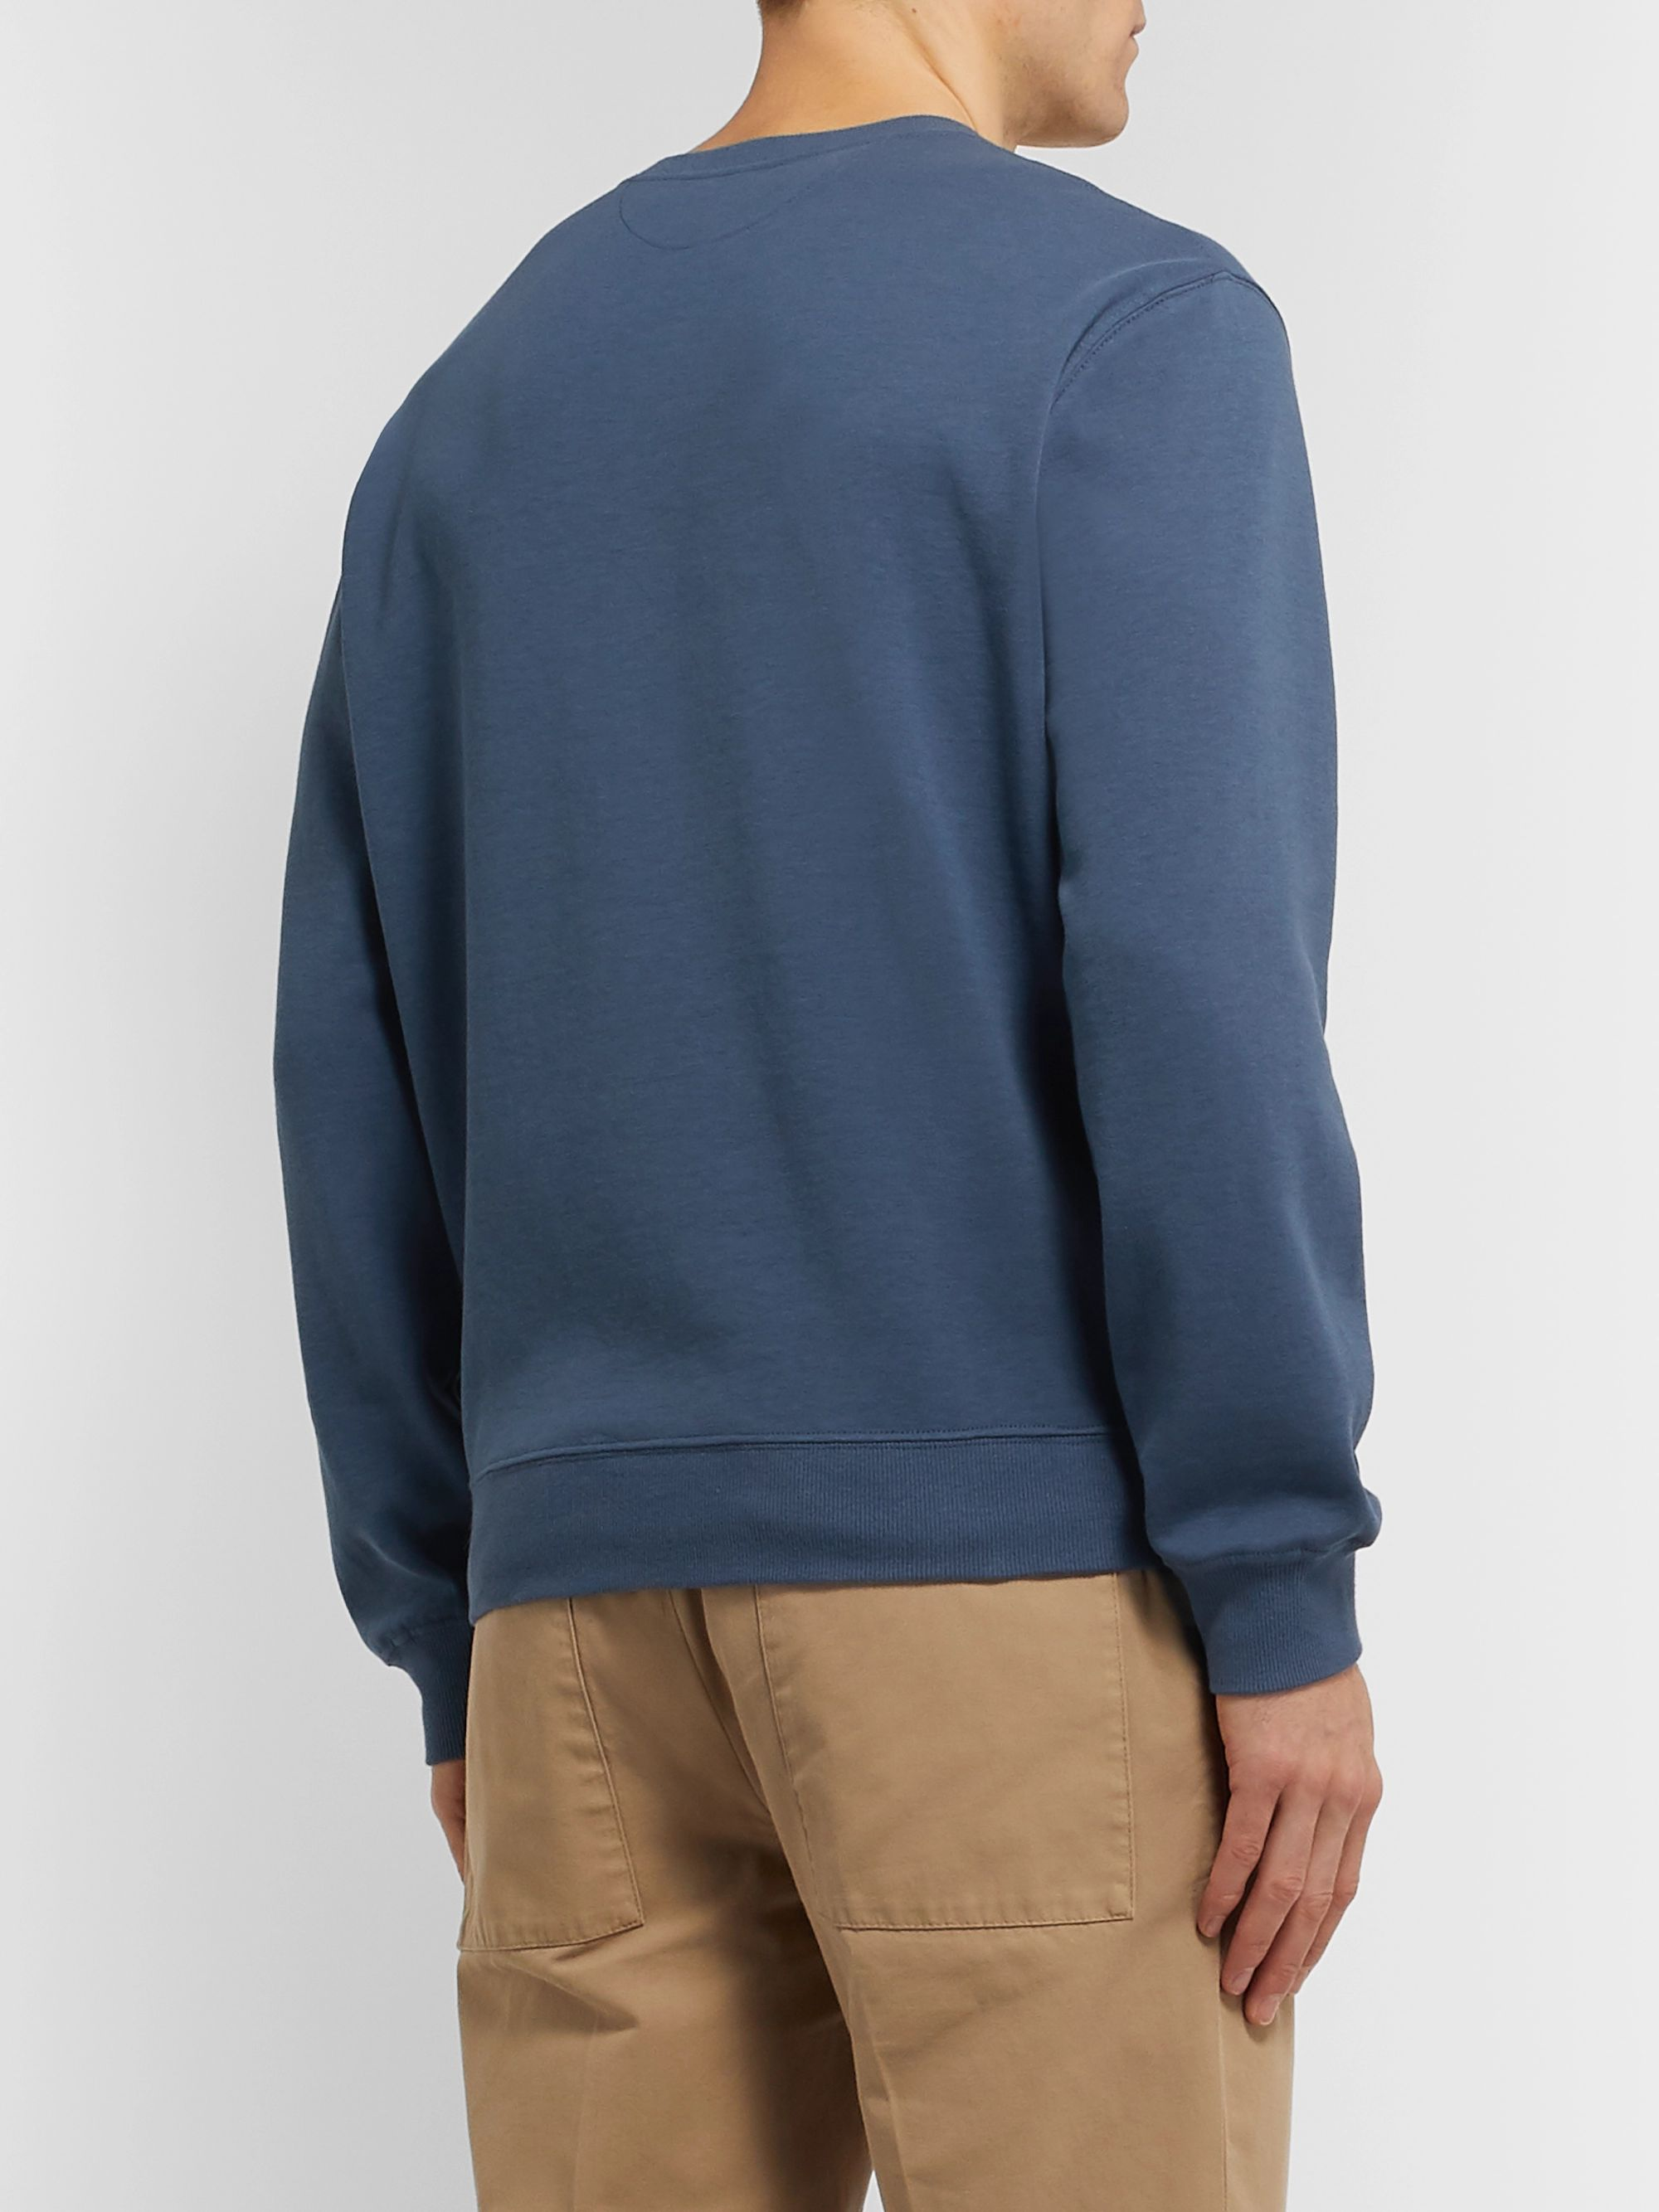 Brunello Cucinelli Cotton-Blend Sweater